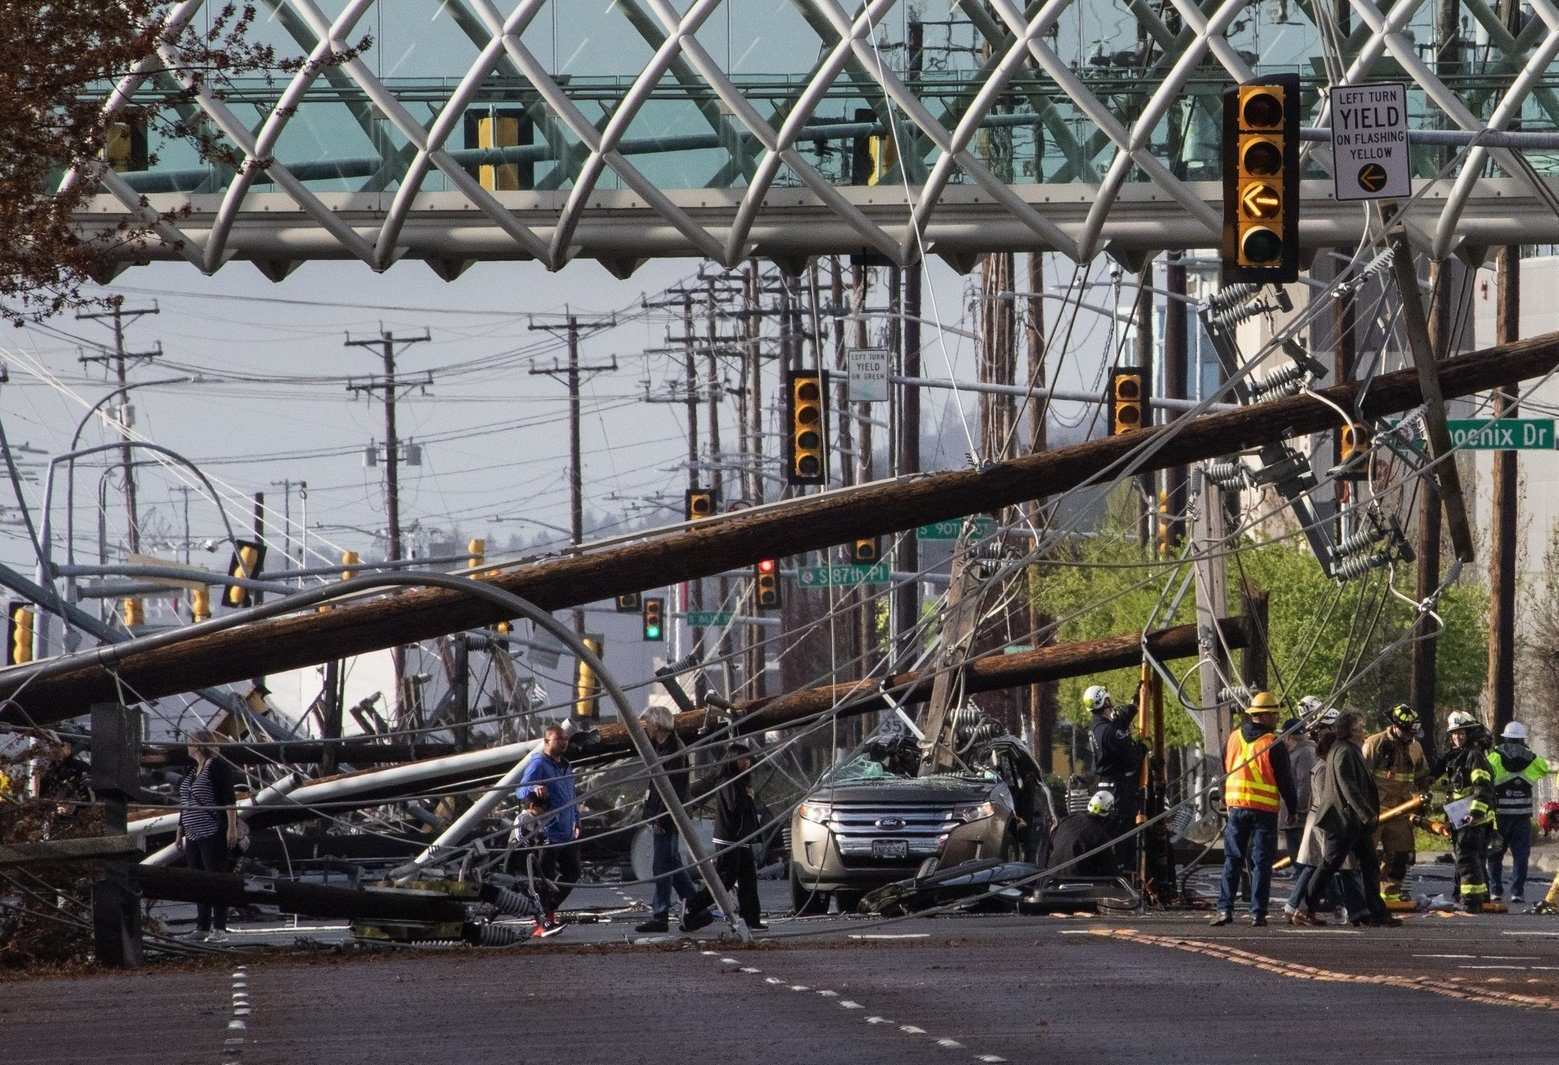 26 electricity poles in a row collapse on a street in Seattle for no apparent reason 86